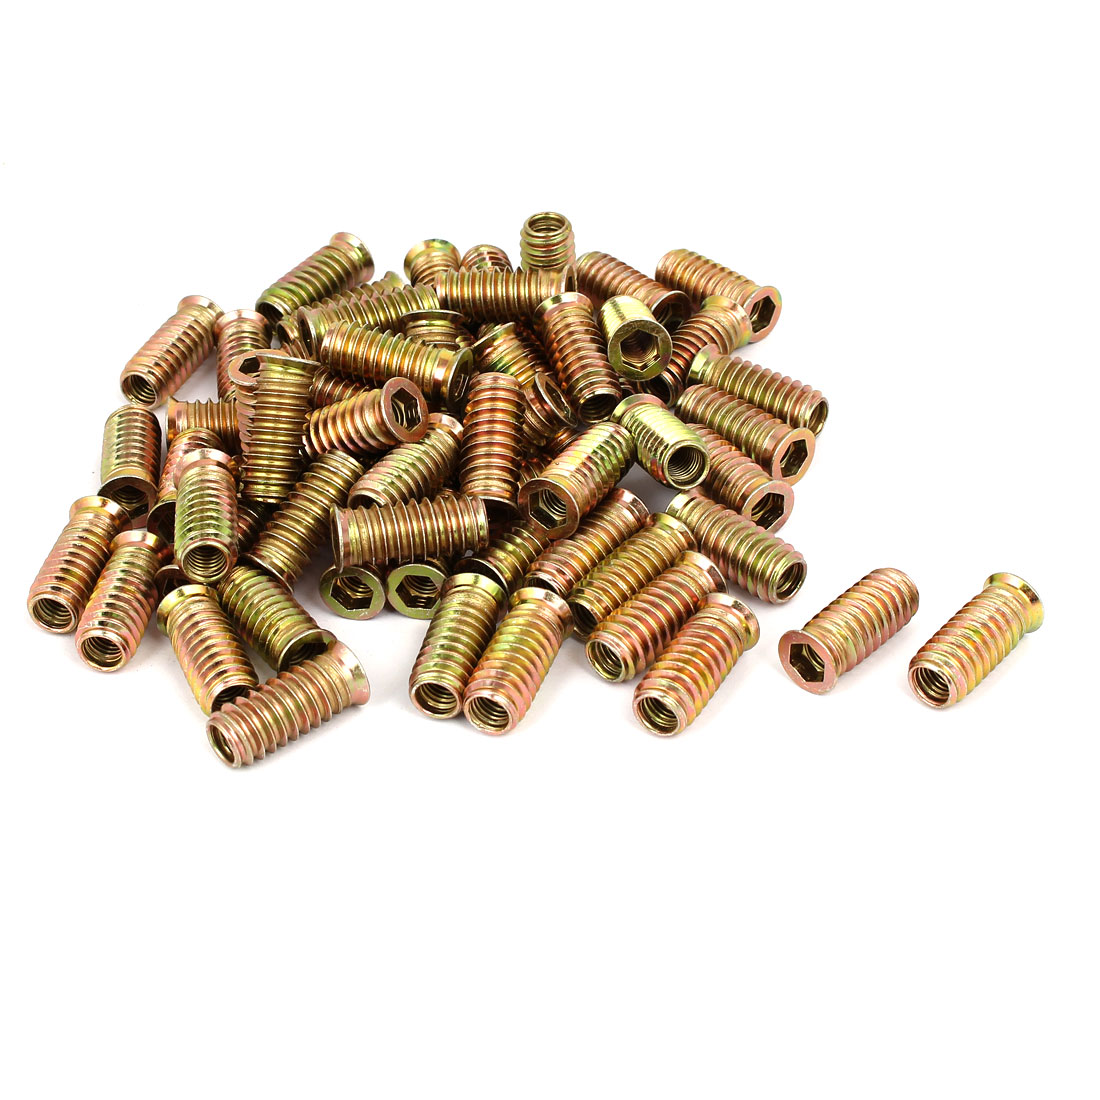 8mm x 30mm Wood Furniture Insert Interface E-Nut Hex Socket Nut Fitting 70PCS